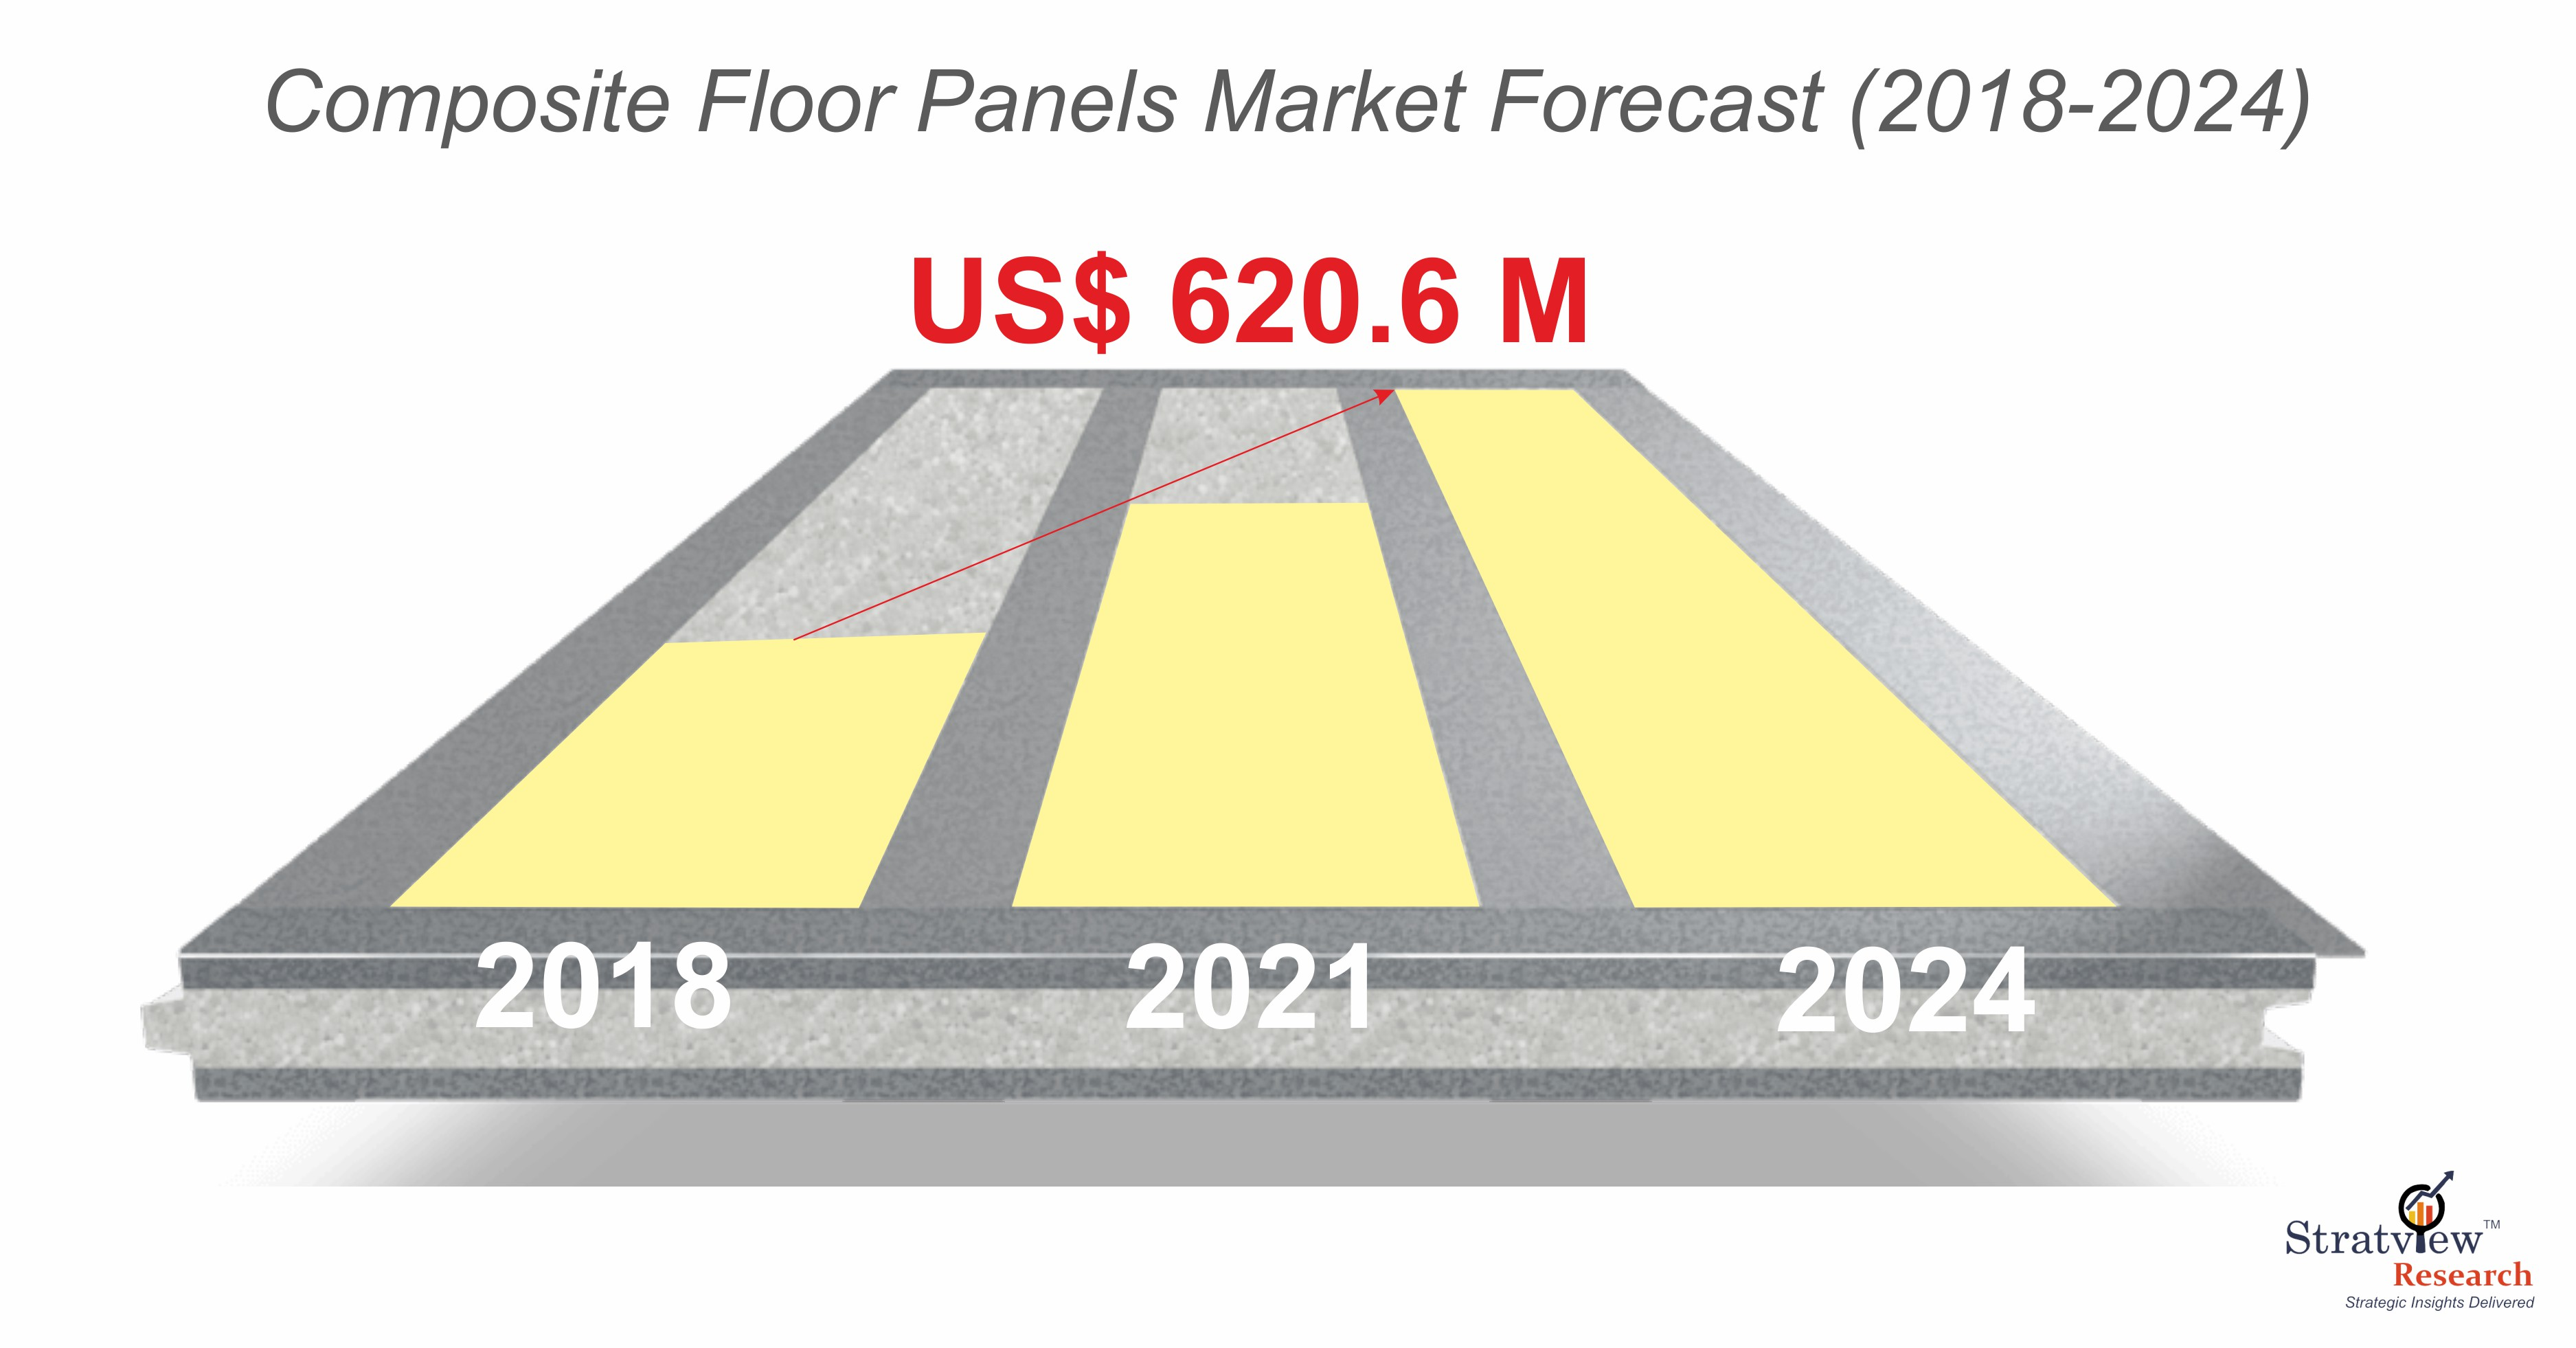 Composite Floor Panel Market Forecast